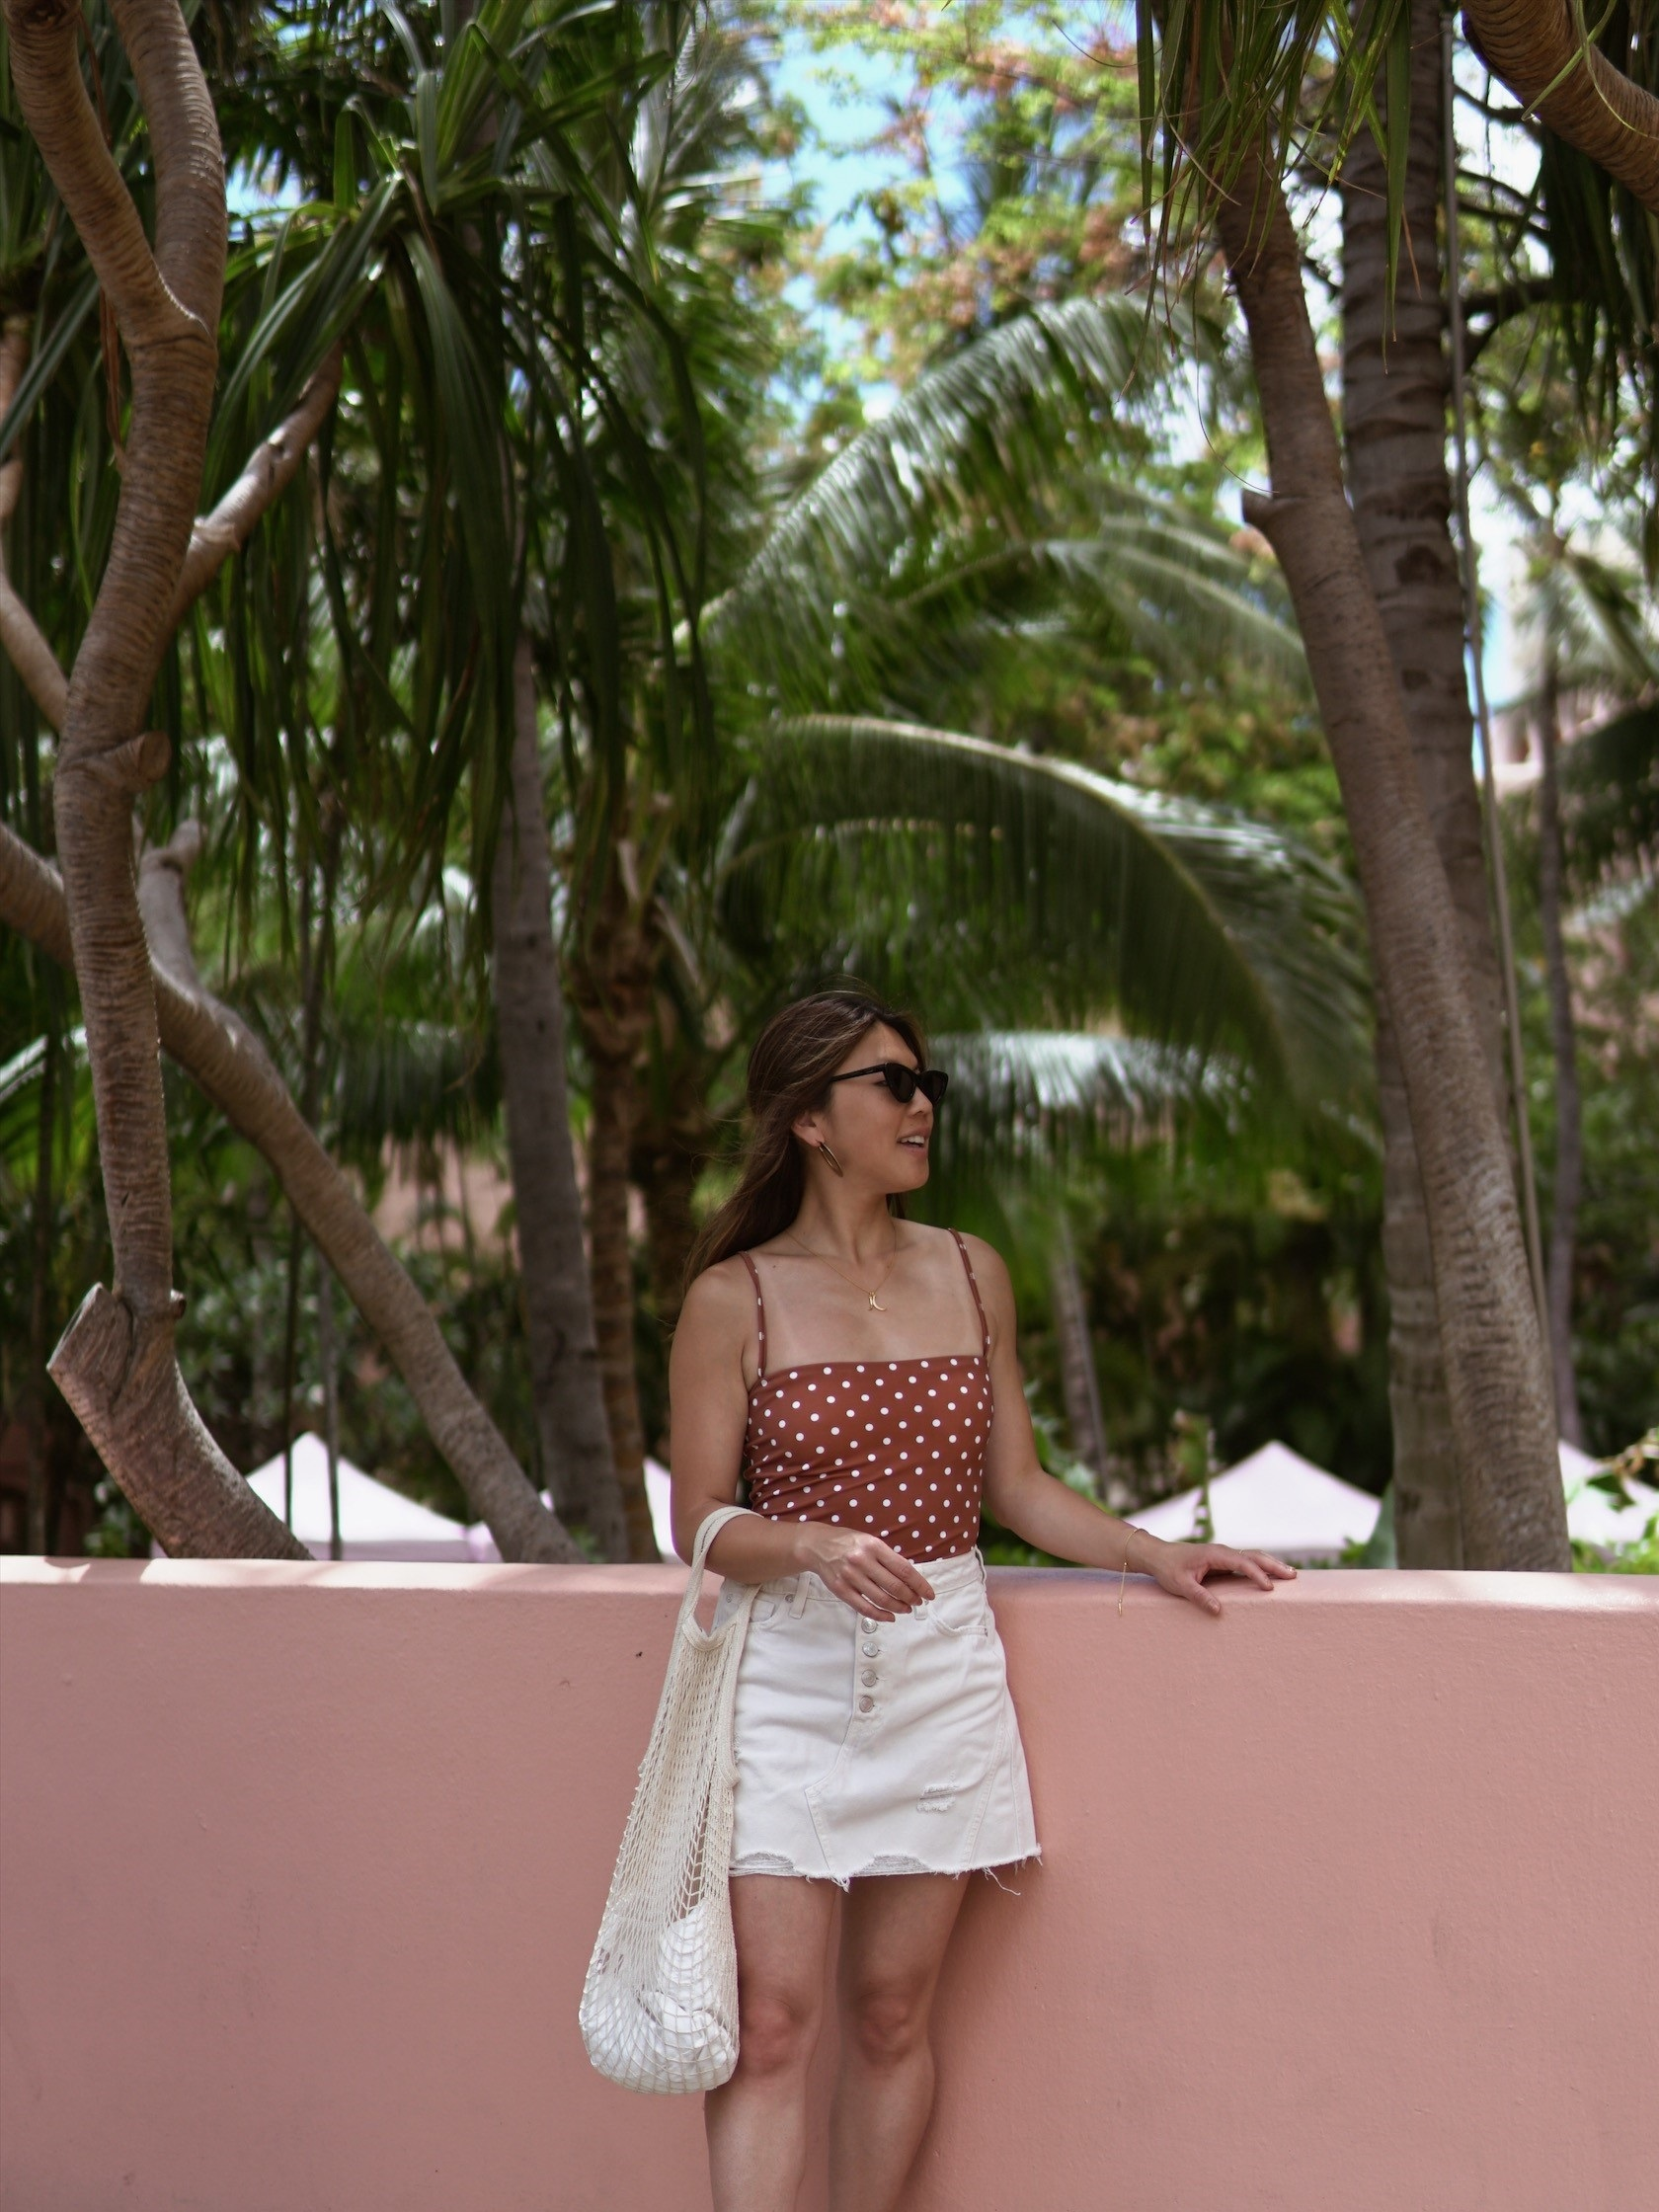 what-to-wear-tropical-vacation.JPG